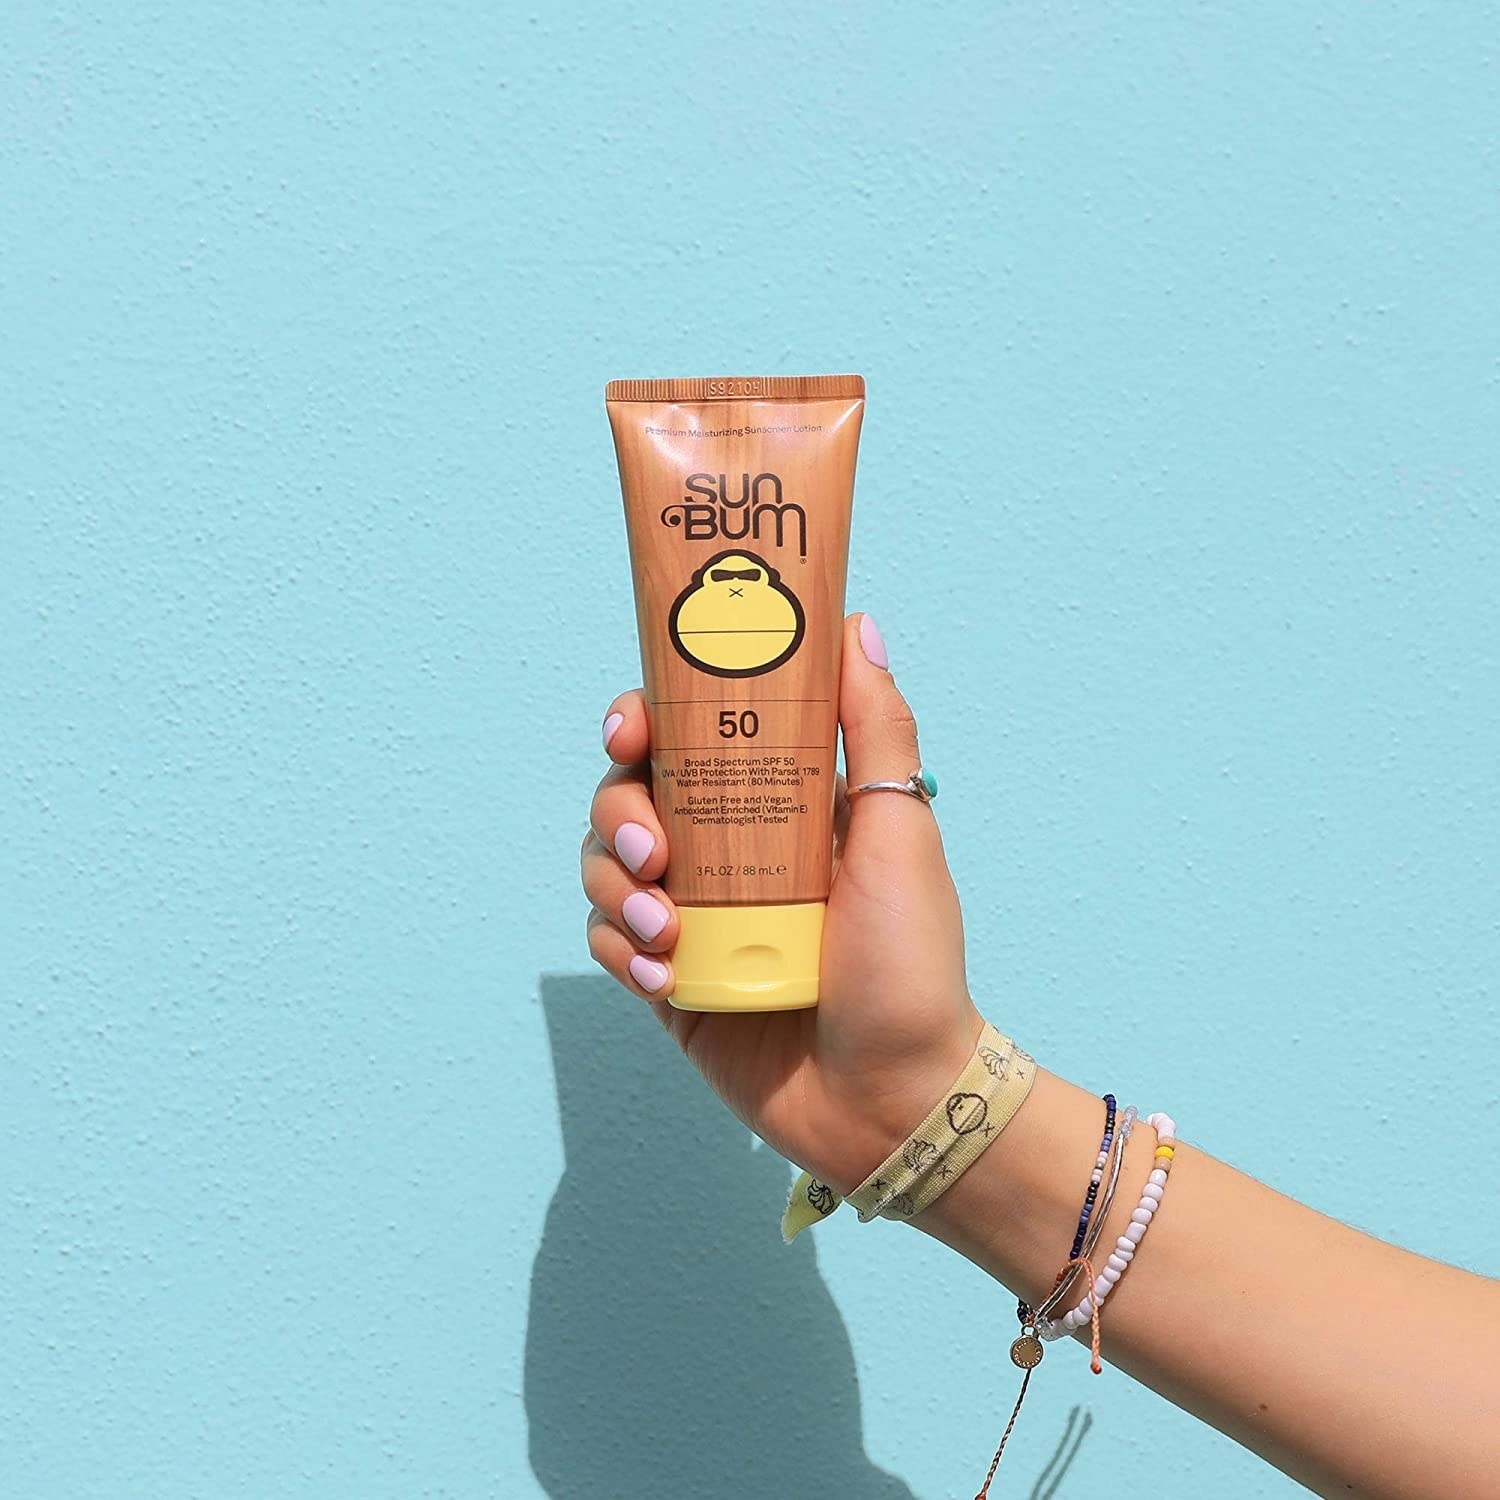 A model holding the tube of sunscreen